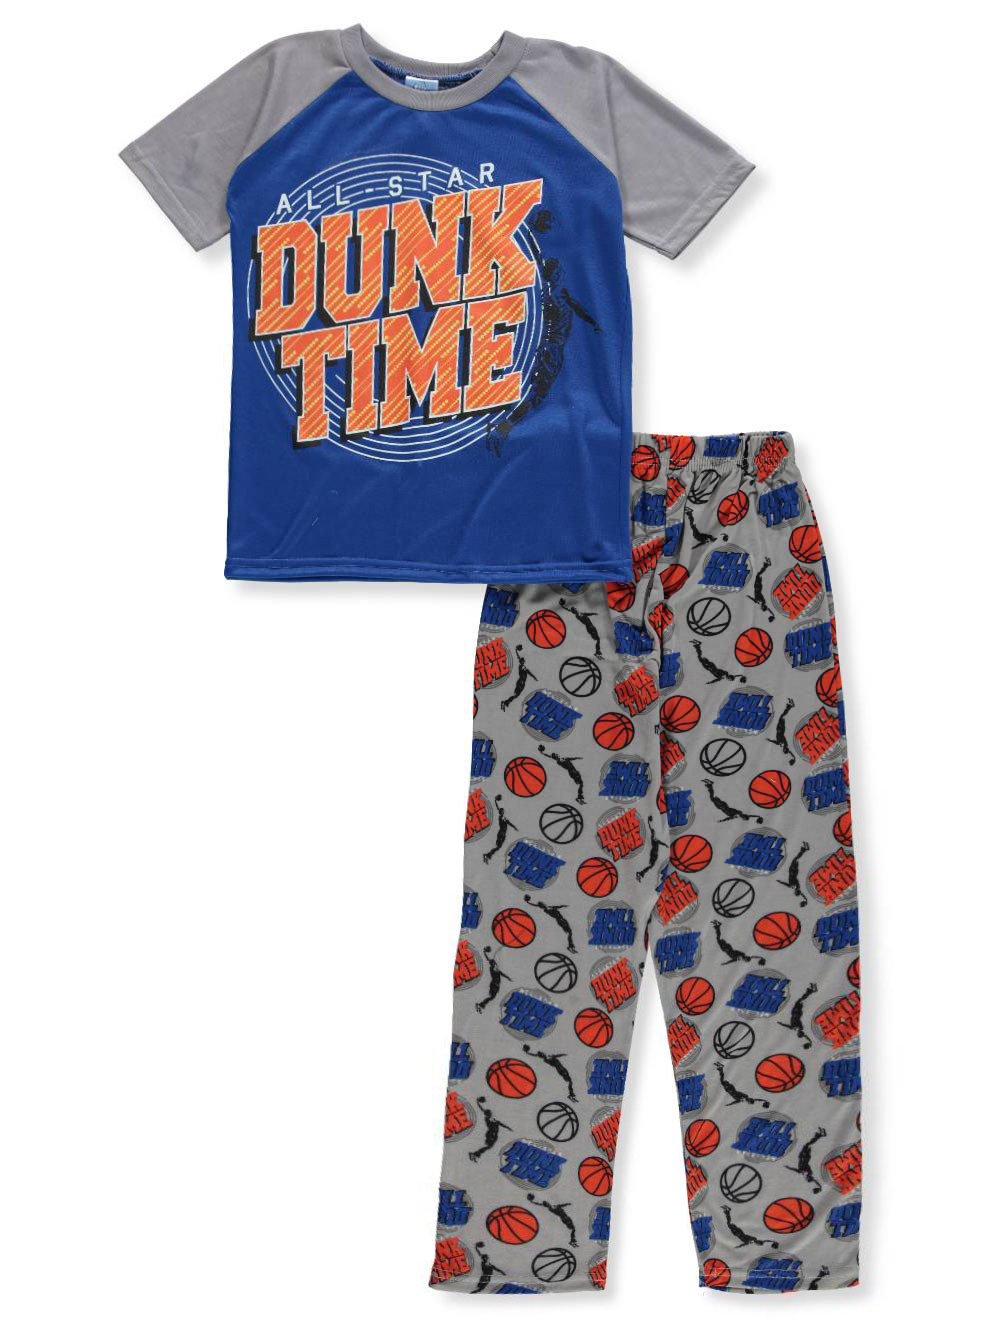 Tuff Guys Boys' 2-Piece Pajamas